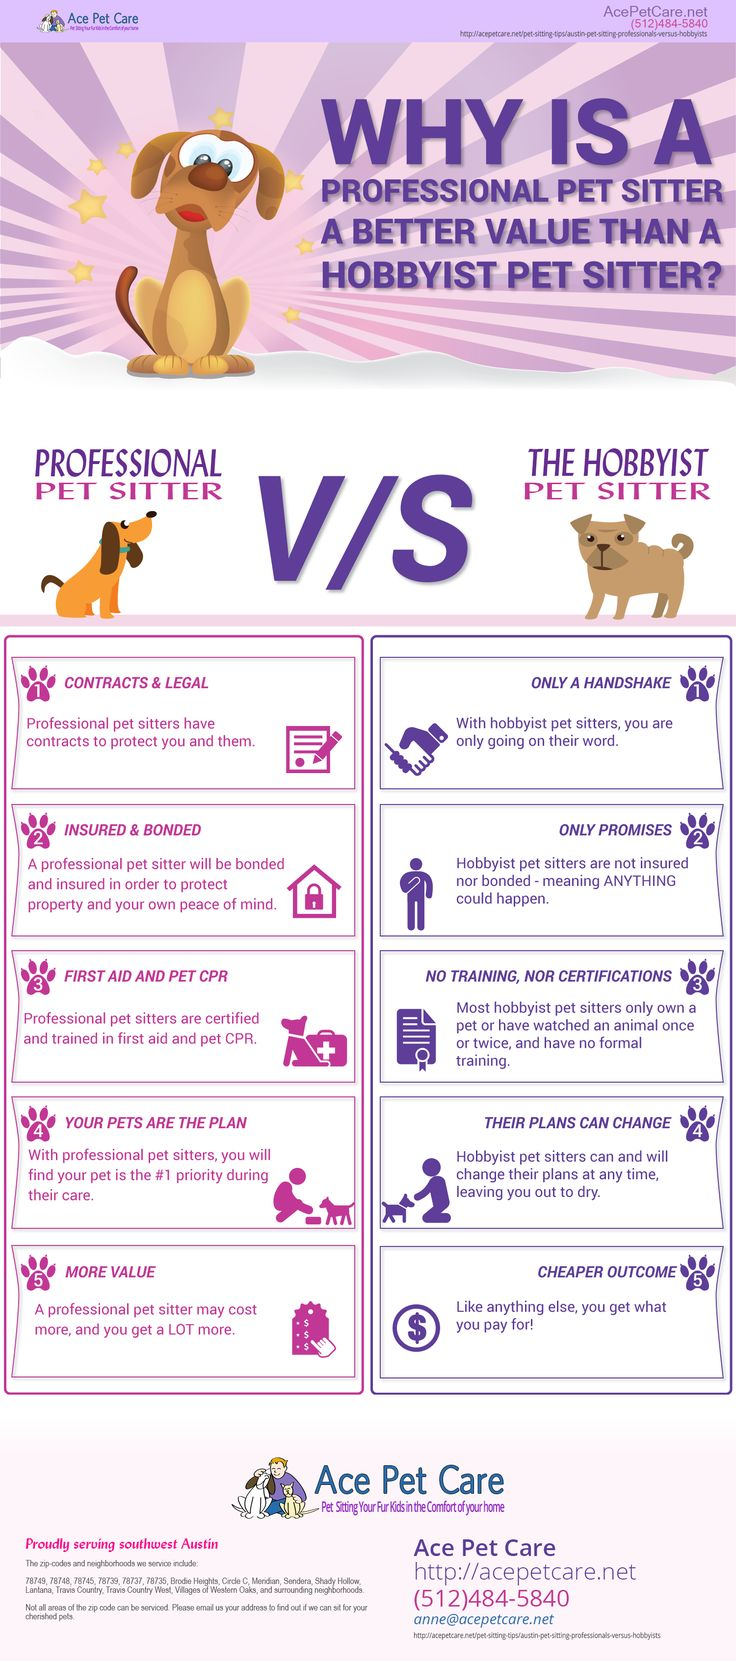 If you have ever thought about hiring a hobbyist #petsitter, you might be in for more than you expect. As a #petsitting professional, the years of experience, contracts, insurances and training, as well as the professional attention you and your furkid expect all get met. Hopefully this #infographic helps you to see what the real value of a professional #pet sitter is.  http://acepetcare.net/pet-sitting-tips/austin-pet-sitting-professionals-versus-hobbyists/